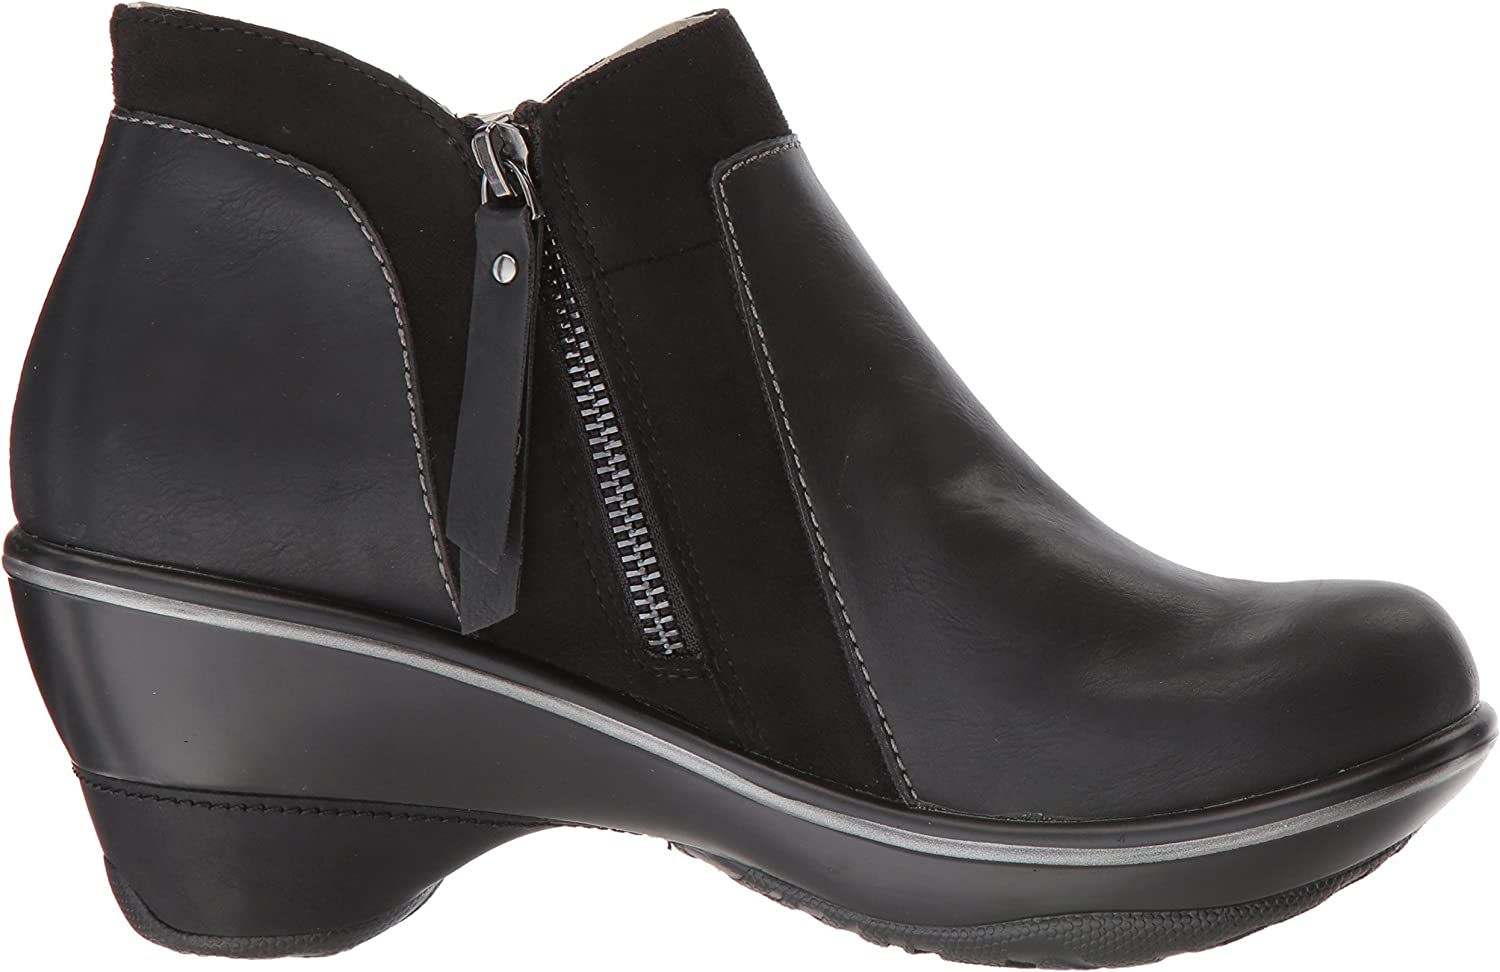 JBU by Jambu Womens Pilot Wedge Pump